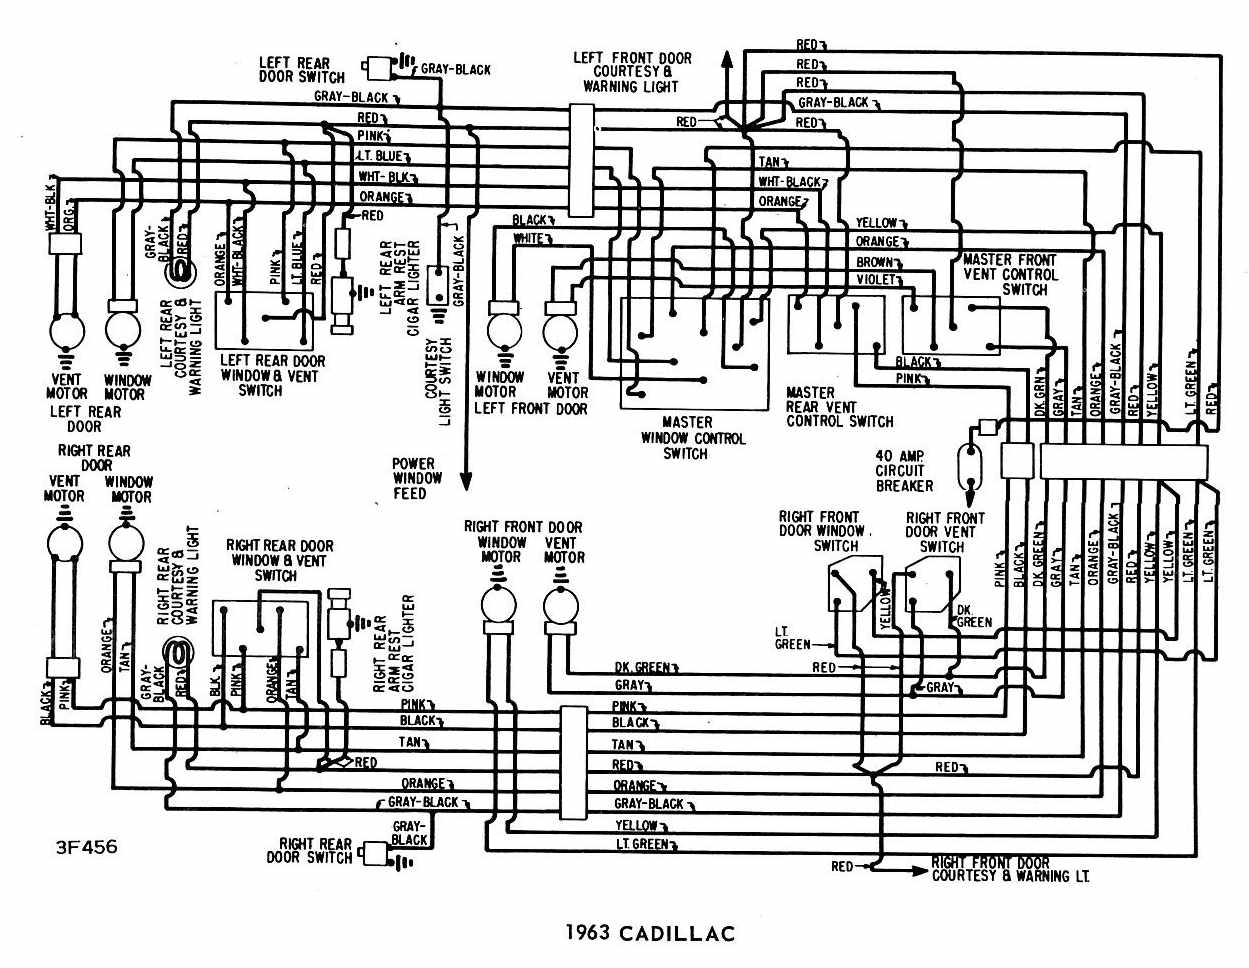 63 Falcon Headlight Switch Wiring Diagram Fuel Pump Relay Diode Rectifier For 1951 Cadillac Schematics Diagrams U2022 Rh Orwellvets Co Bridge